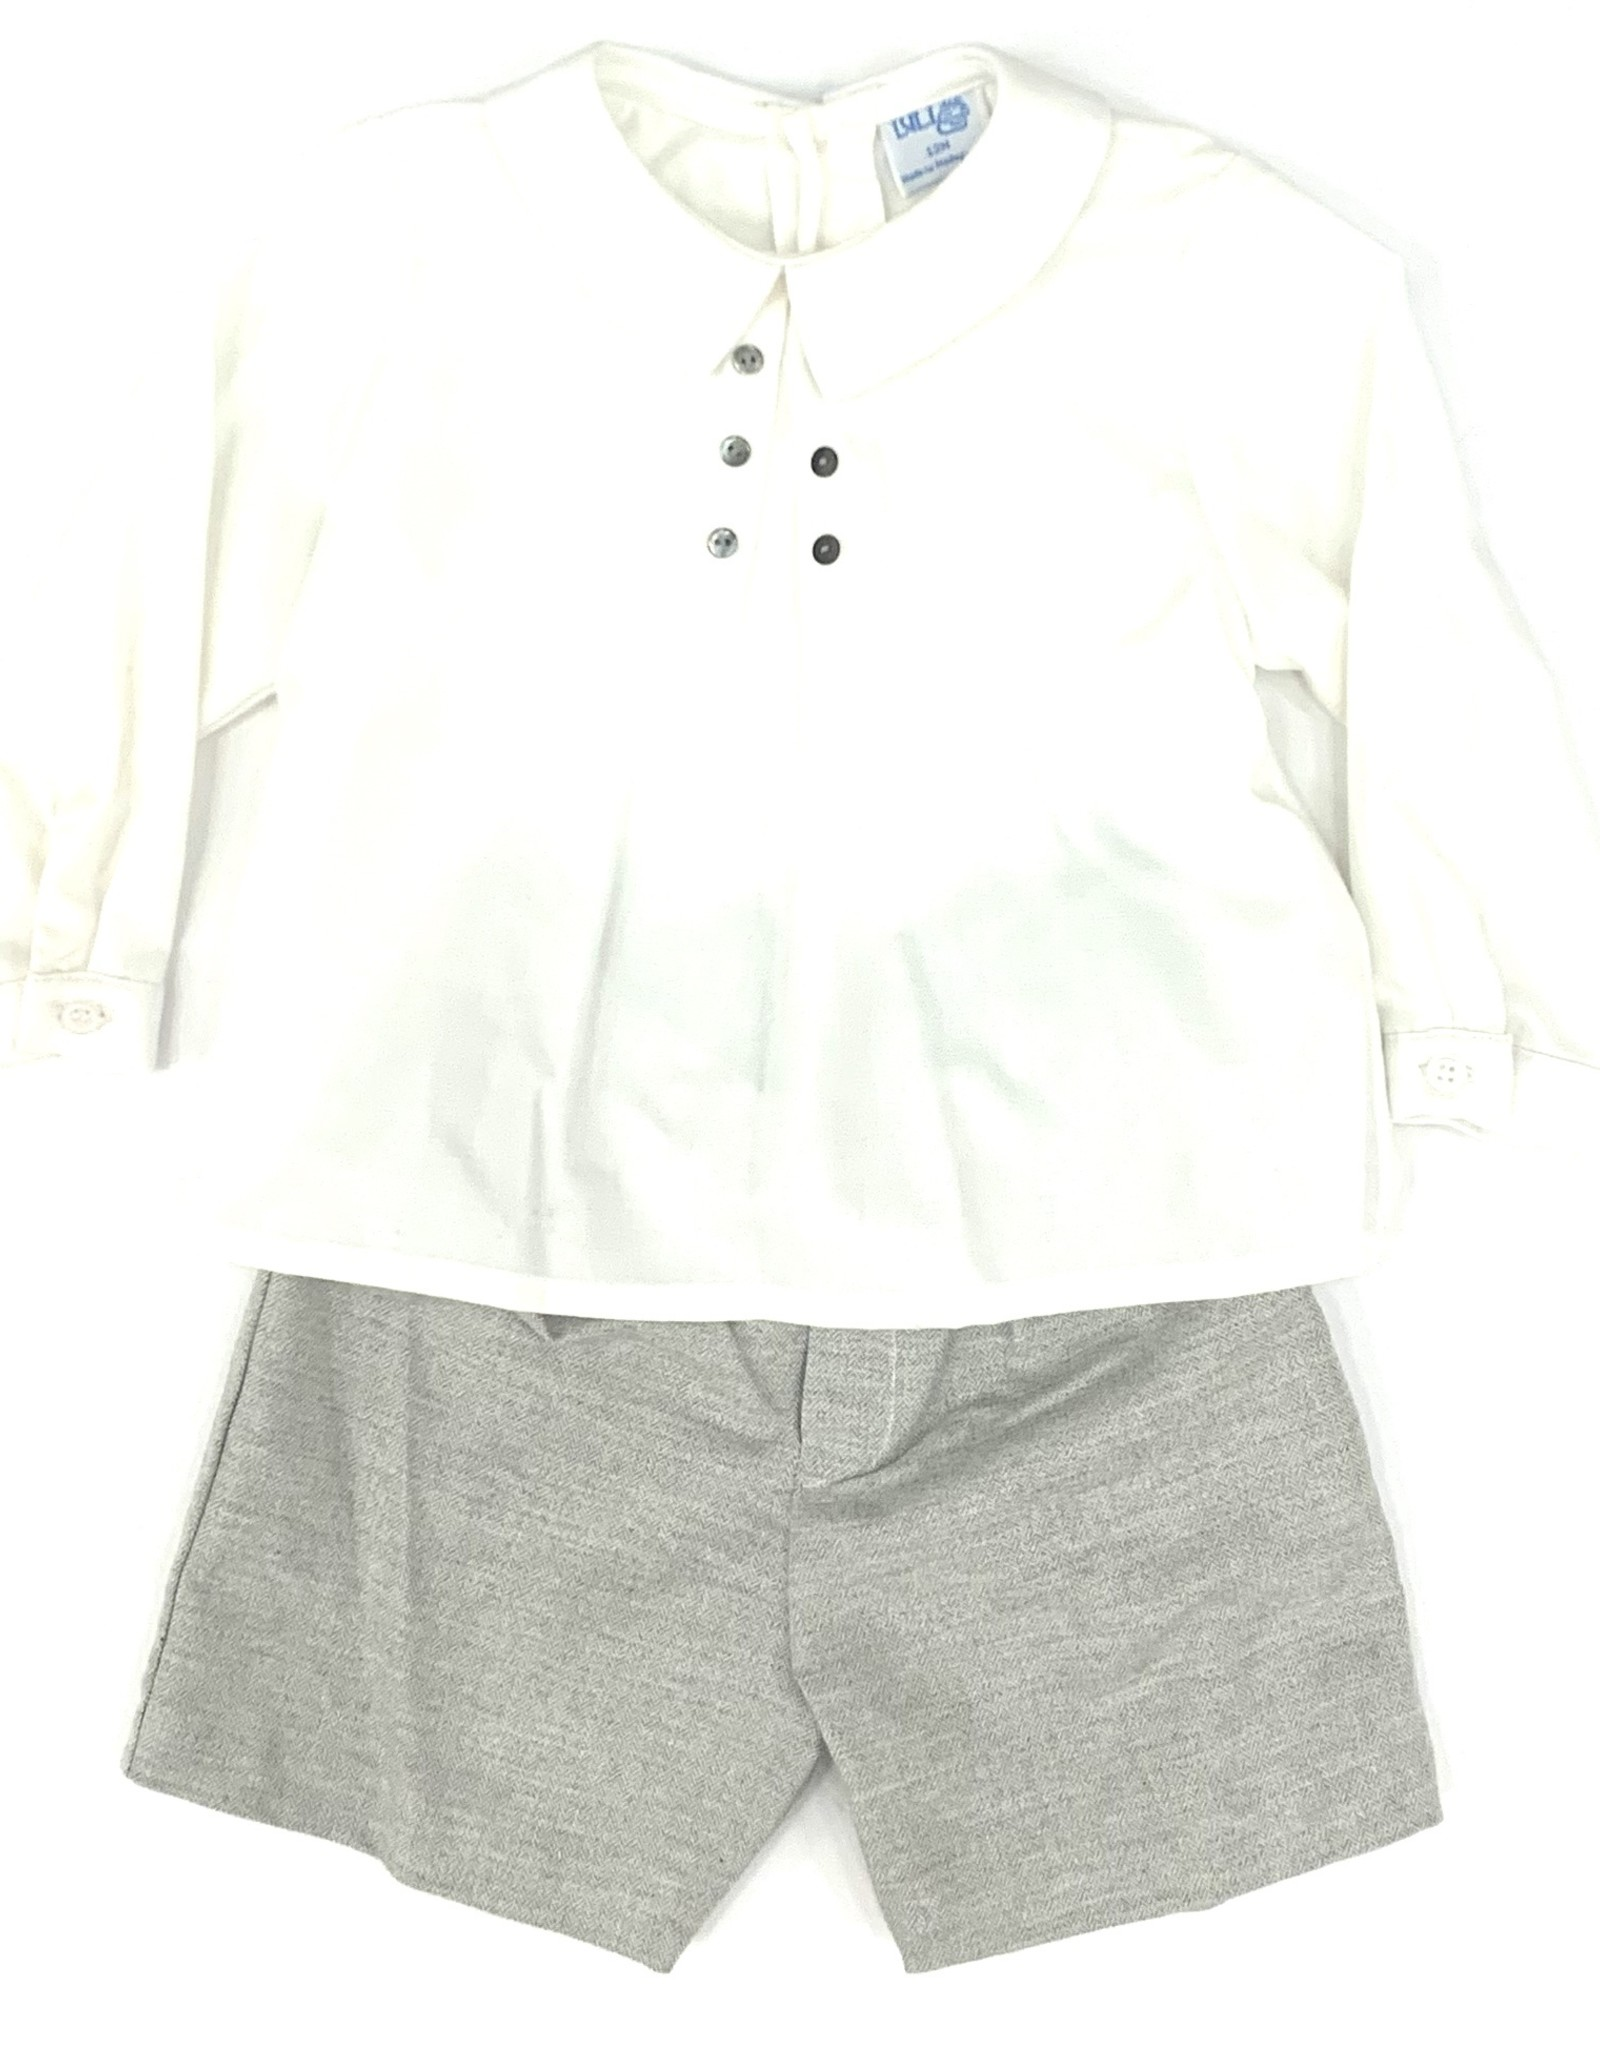 Sophie & Lucas Casual Grey Boy Set